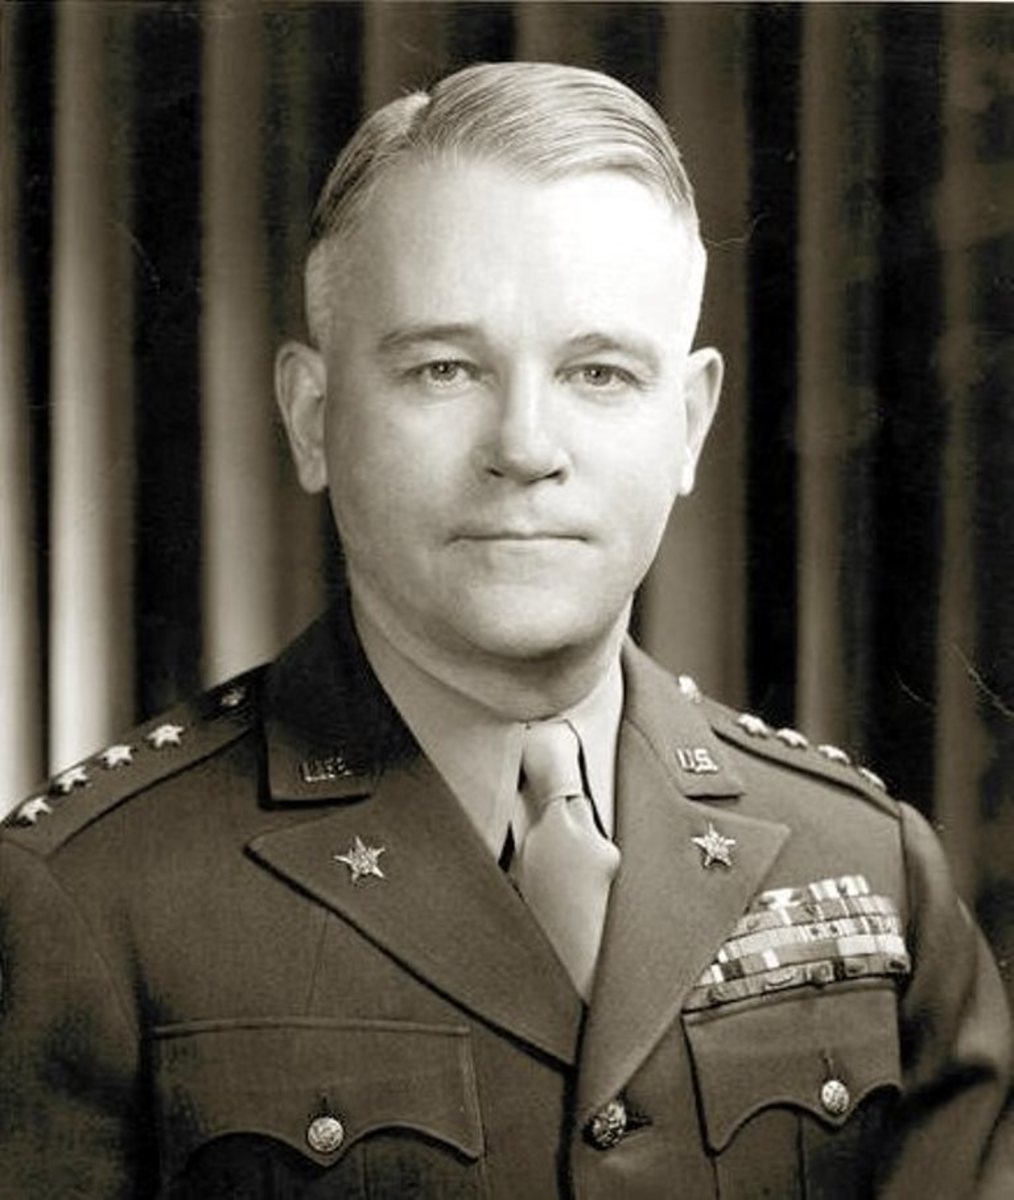 Troy Middleton, pictured when he was CO of the 45th ID.